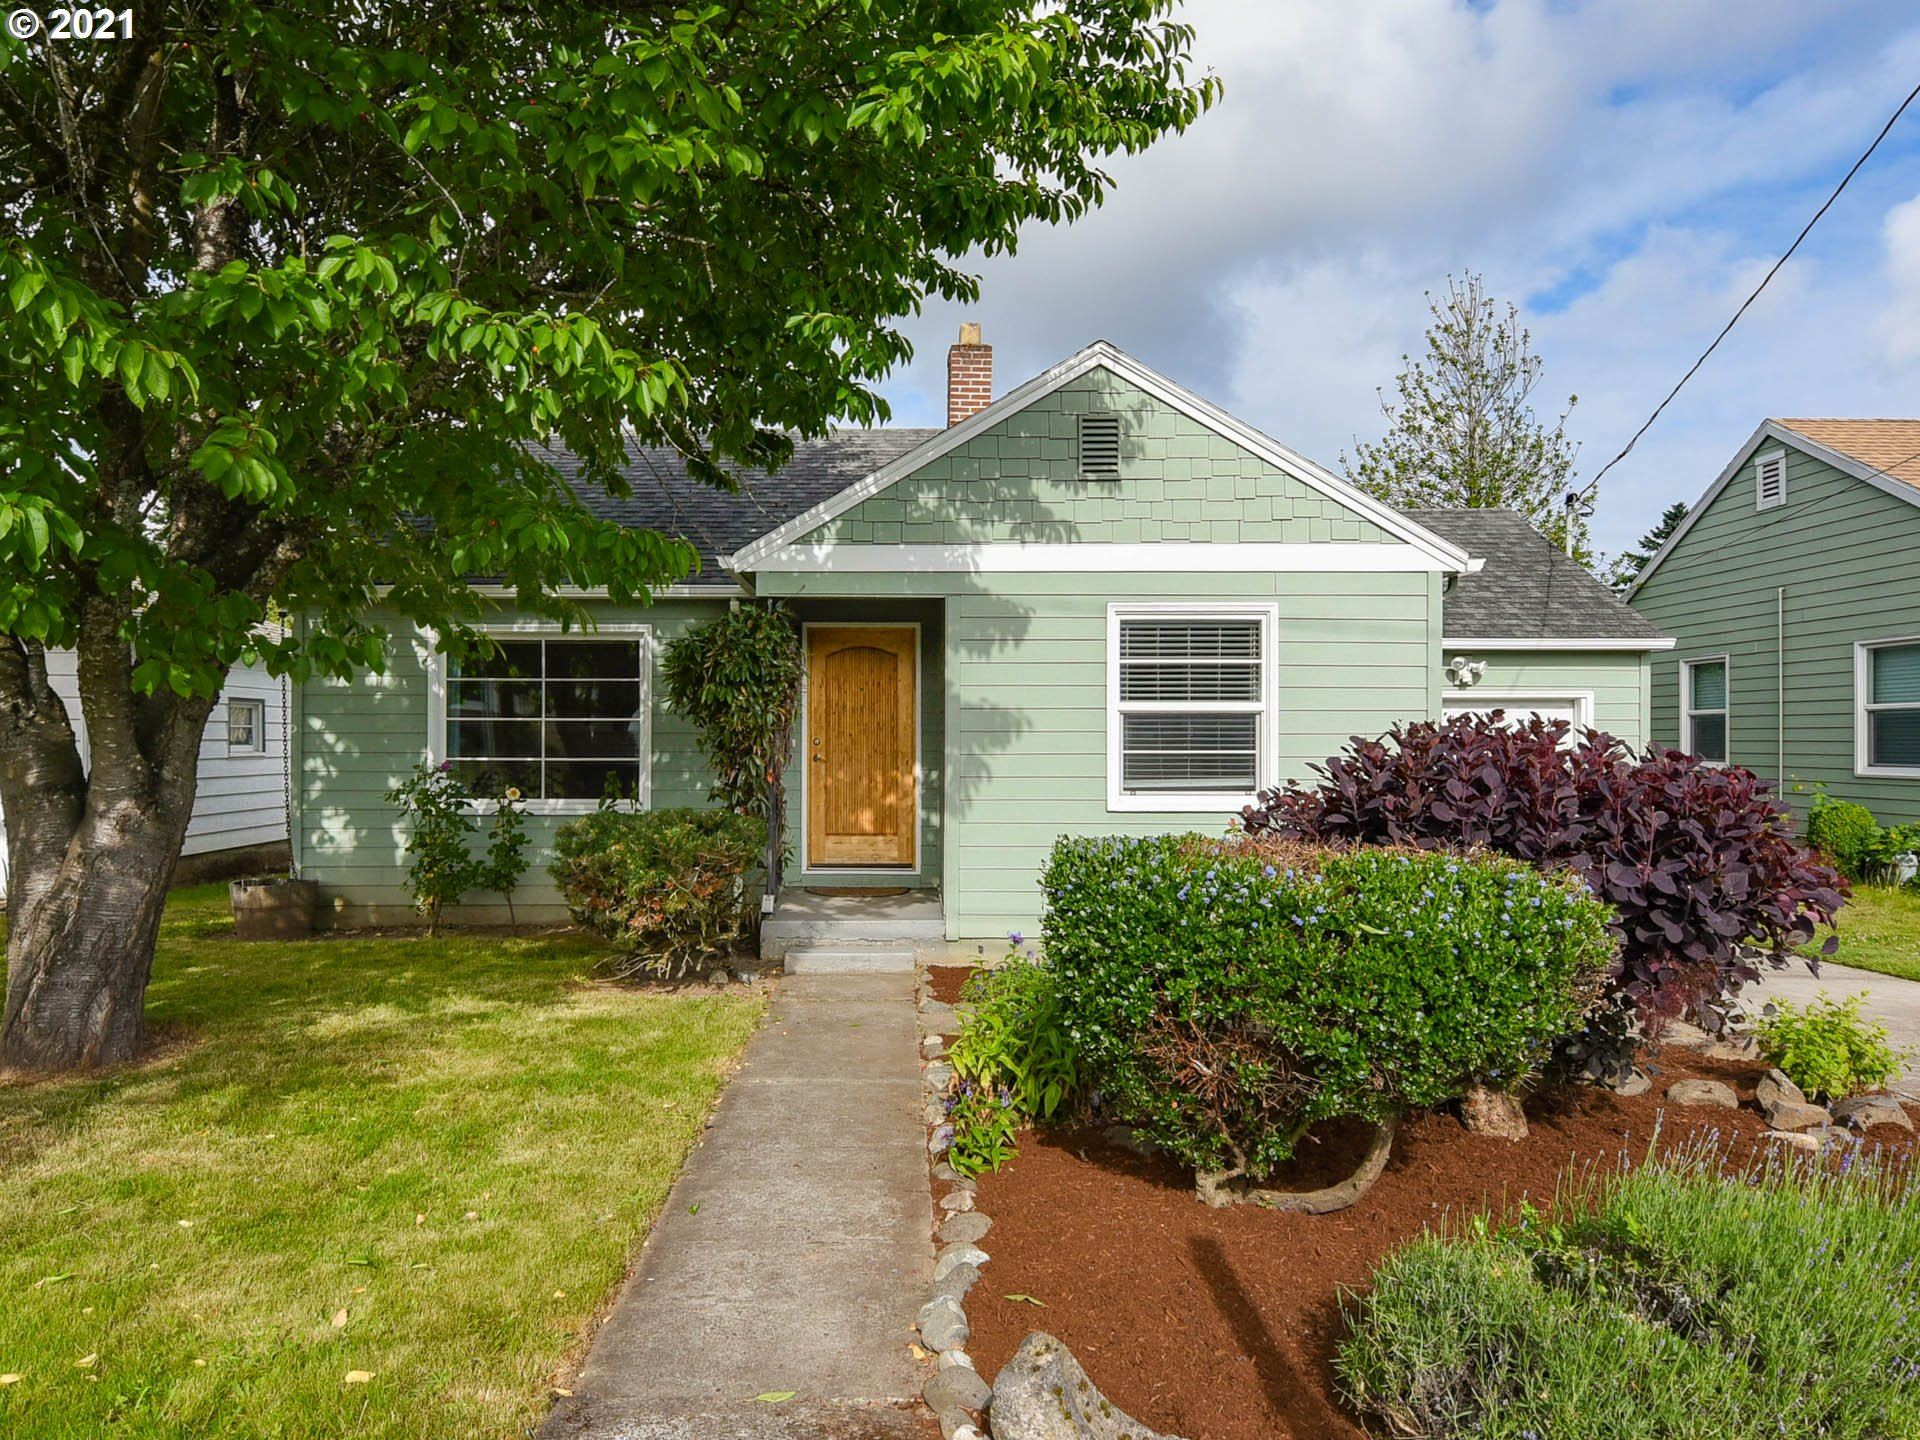 3535 SE 74TH AVE, Portland, OR 97206 - MLS#: 21030205